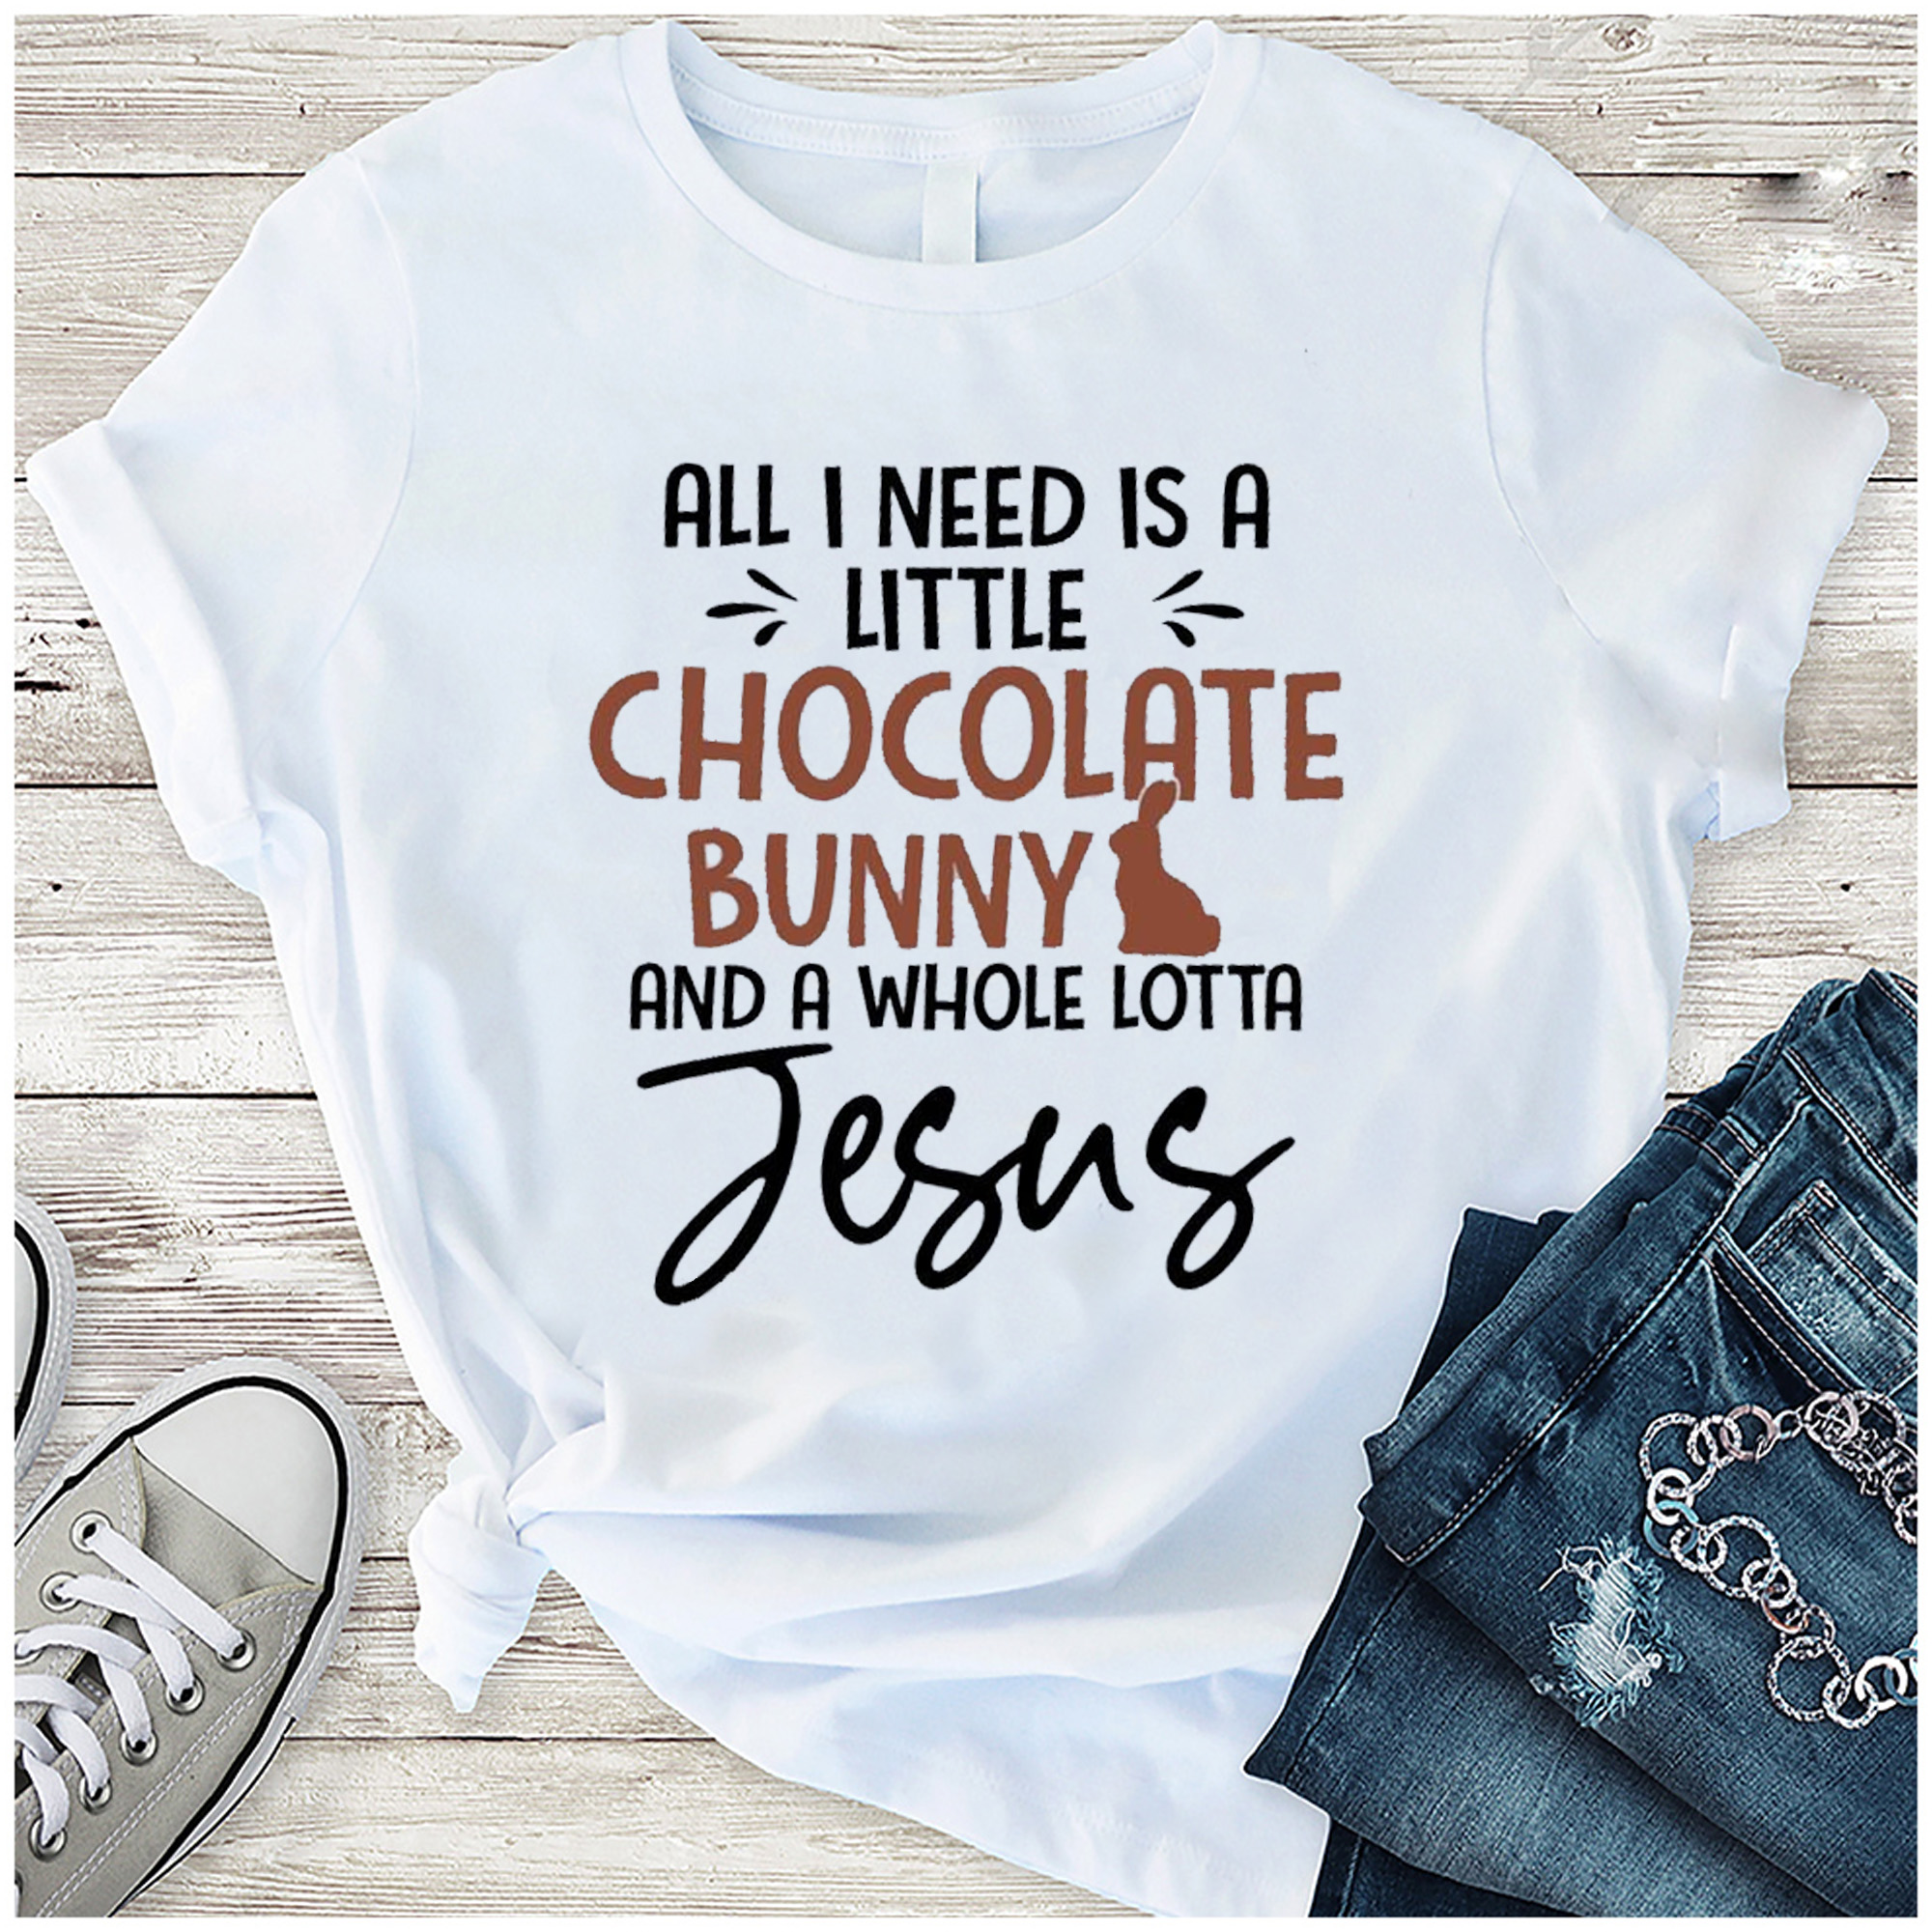 All I Need Is A Chocolate Bunny And A Whole Lotta Jesus Shirt